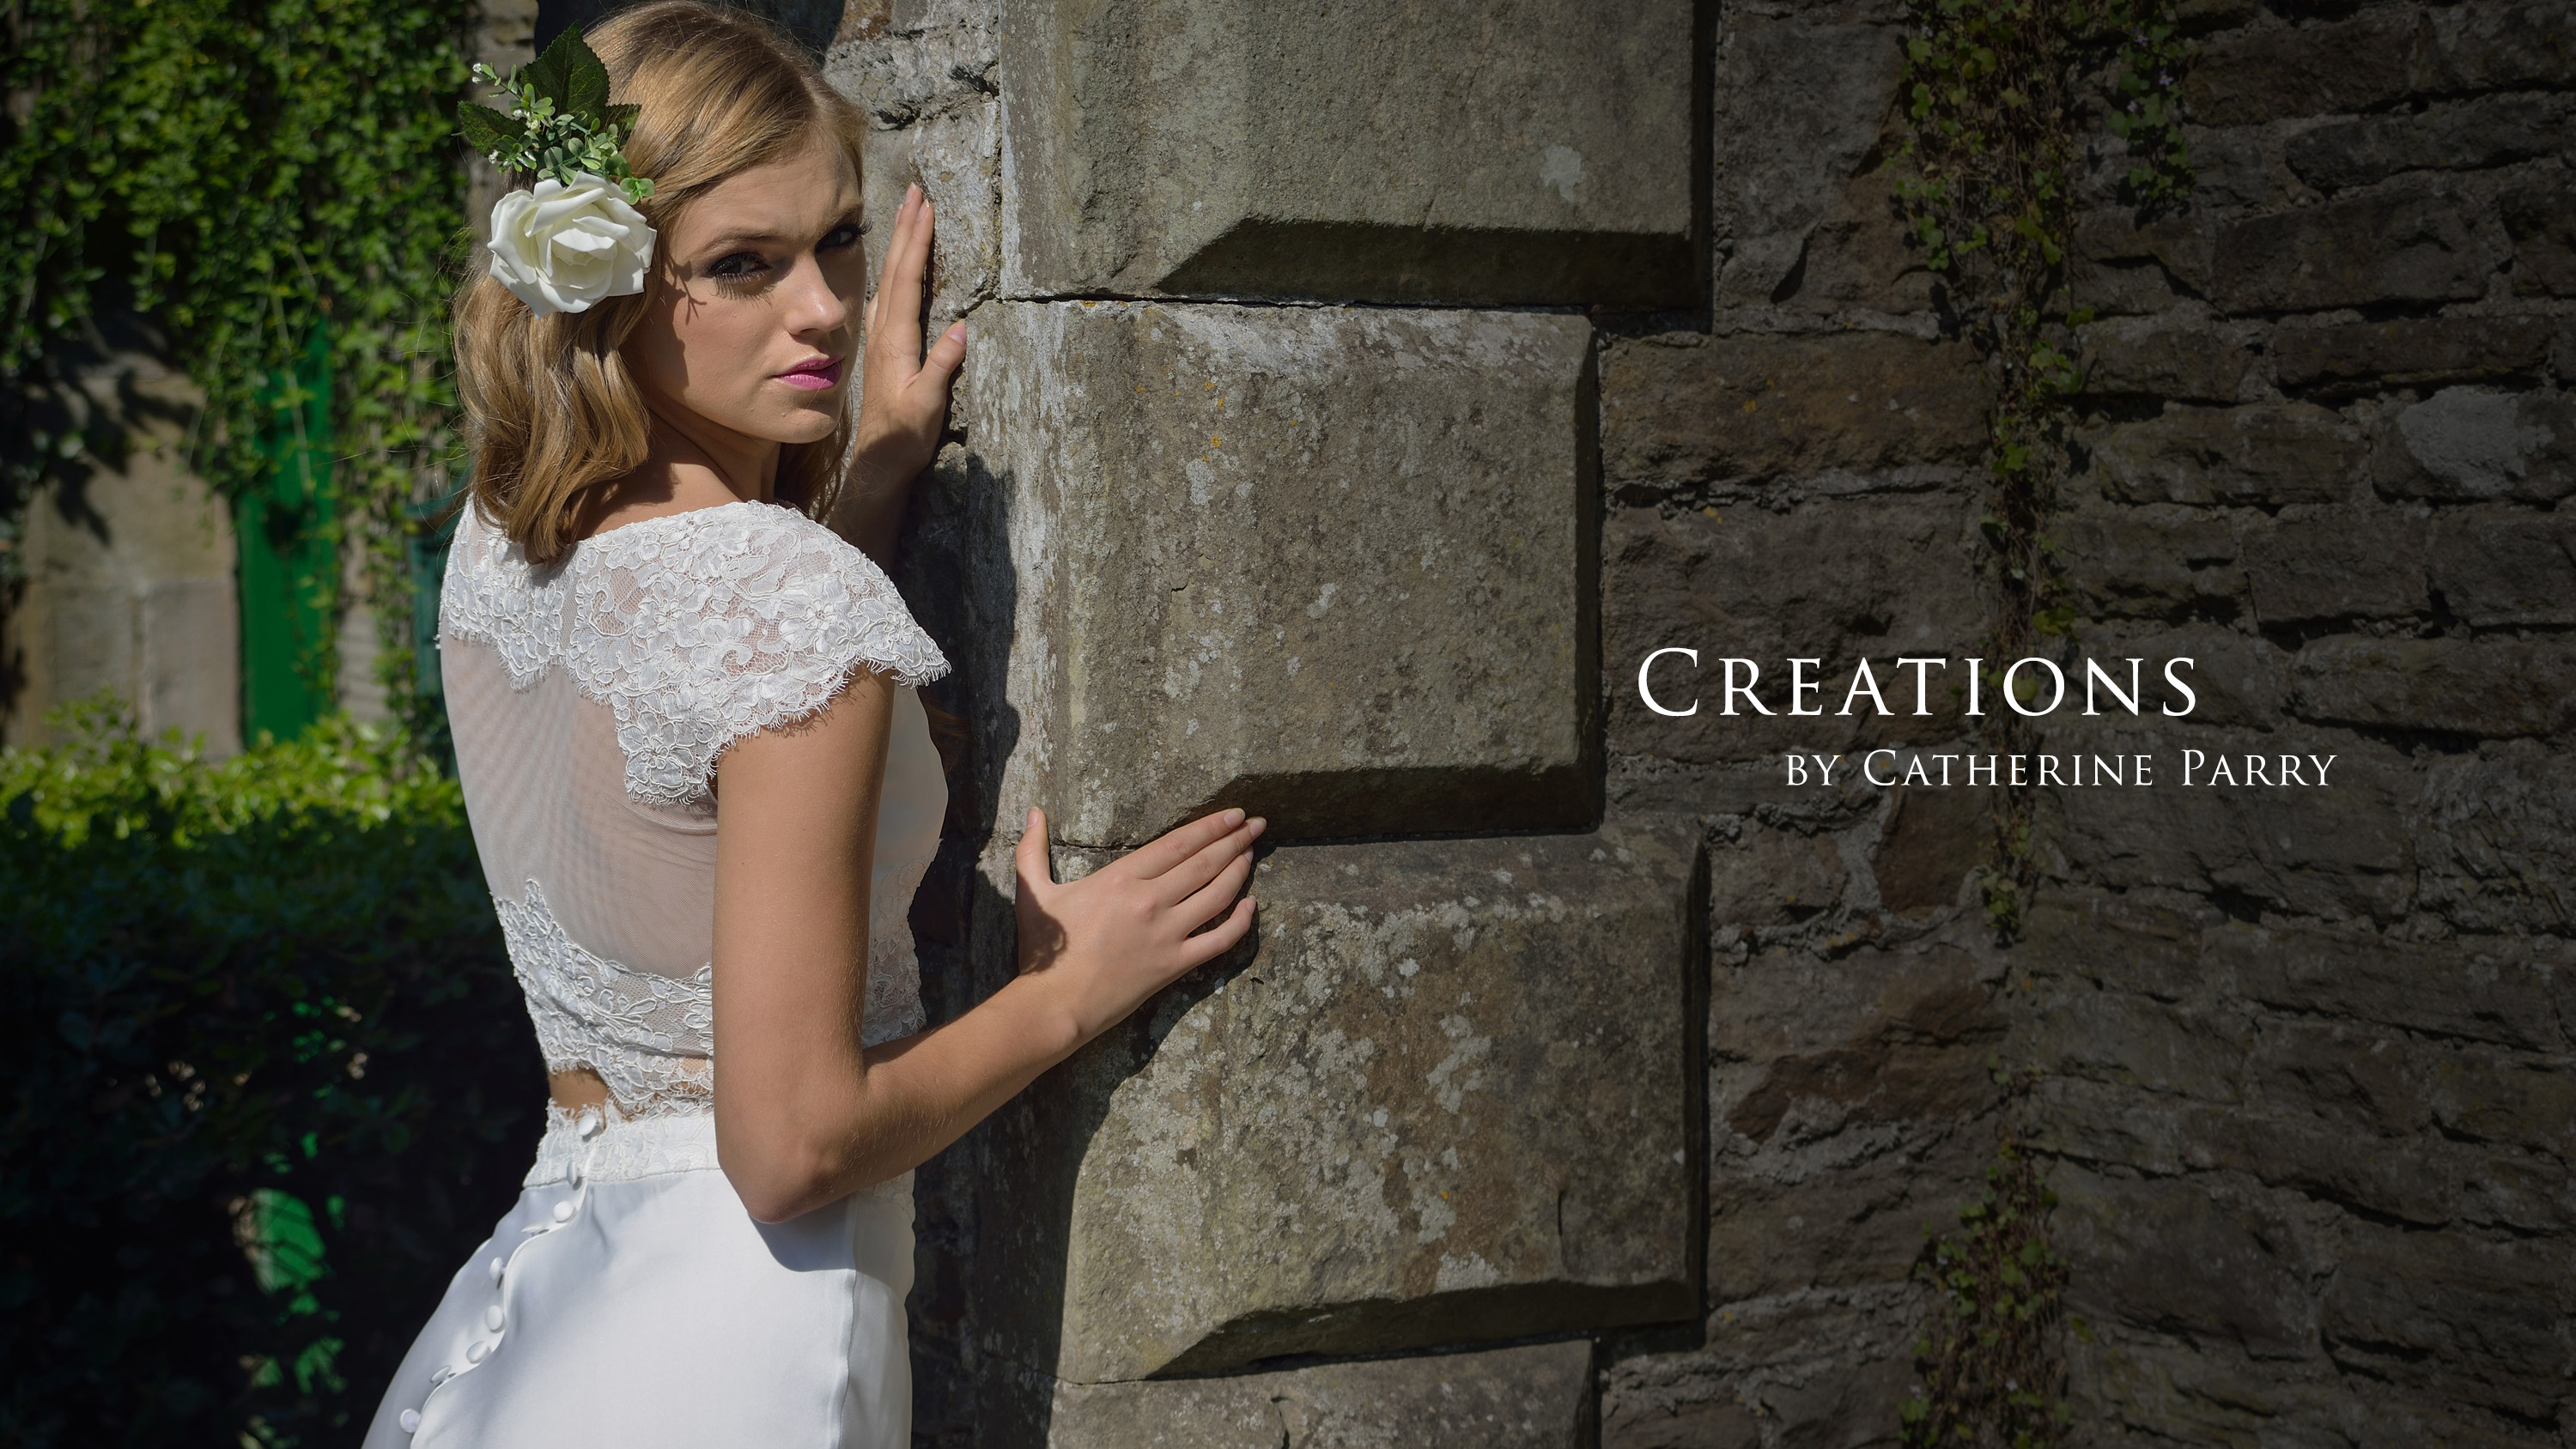 Creations by Catherine Parry